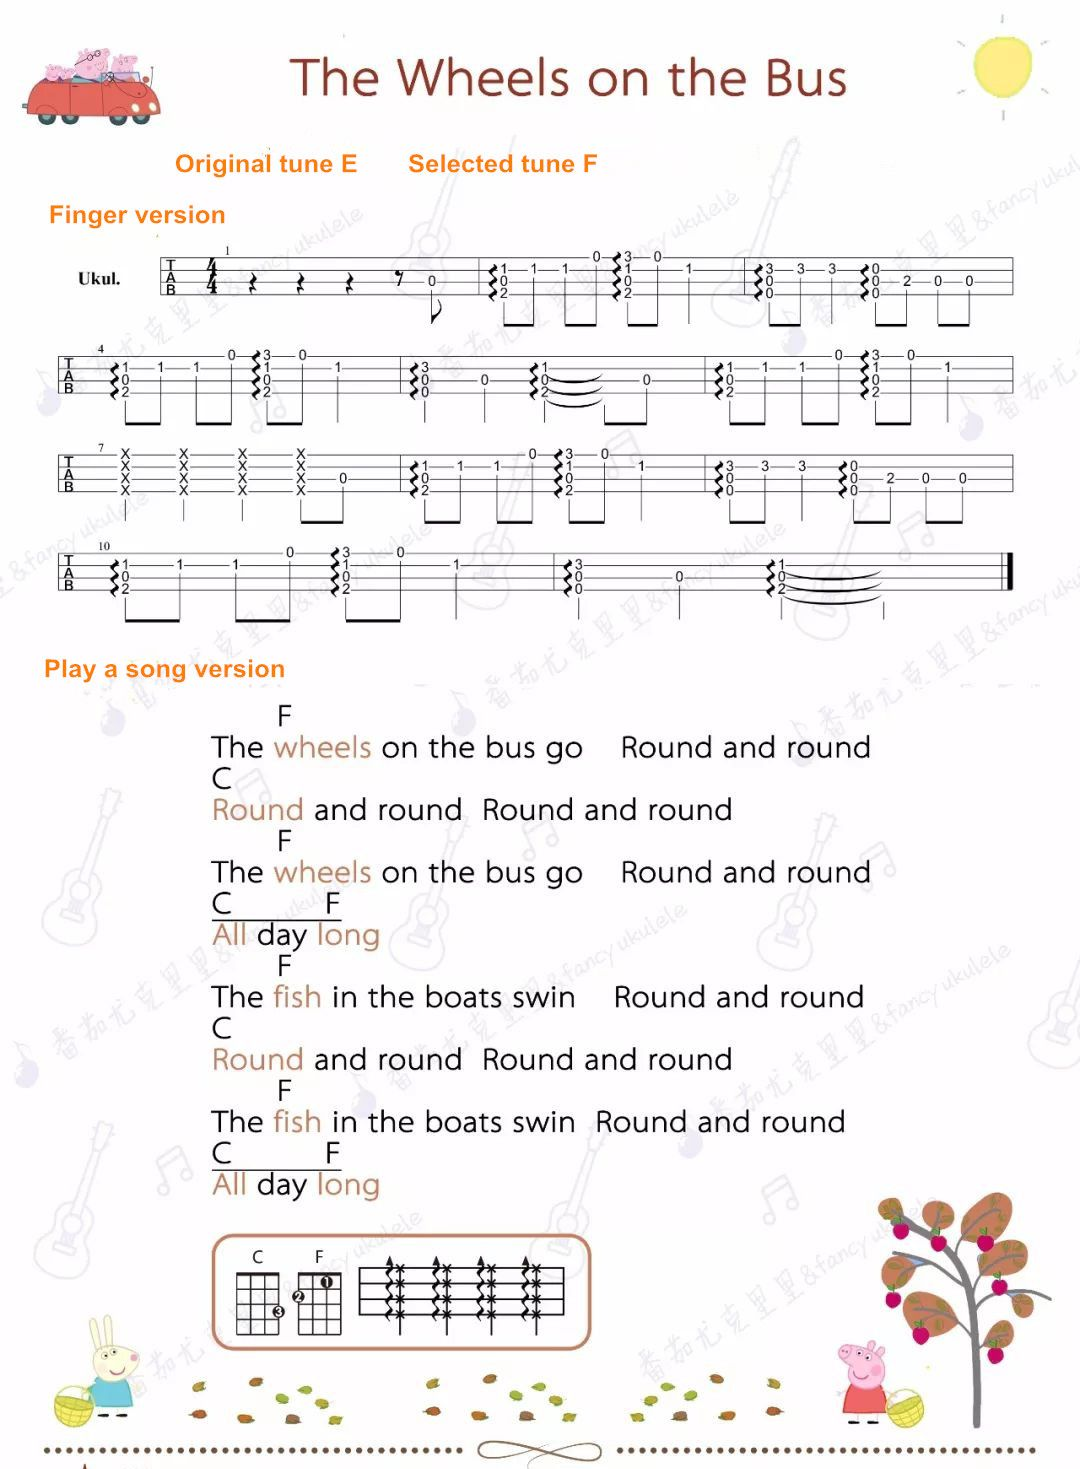 Peppa Pig Ukulele Sheet The Wheels On The Bus Peppa Pig Songs Ukulele Songs Wheels On The Bus